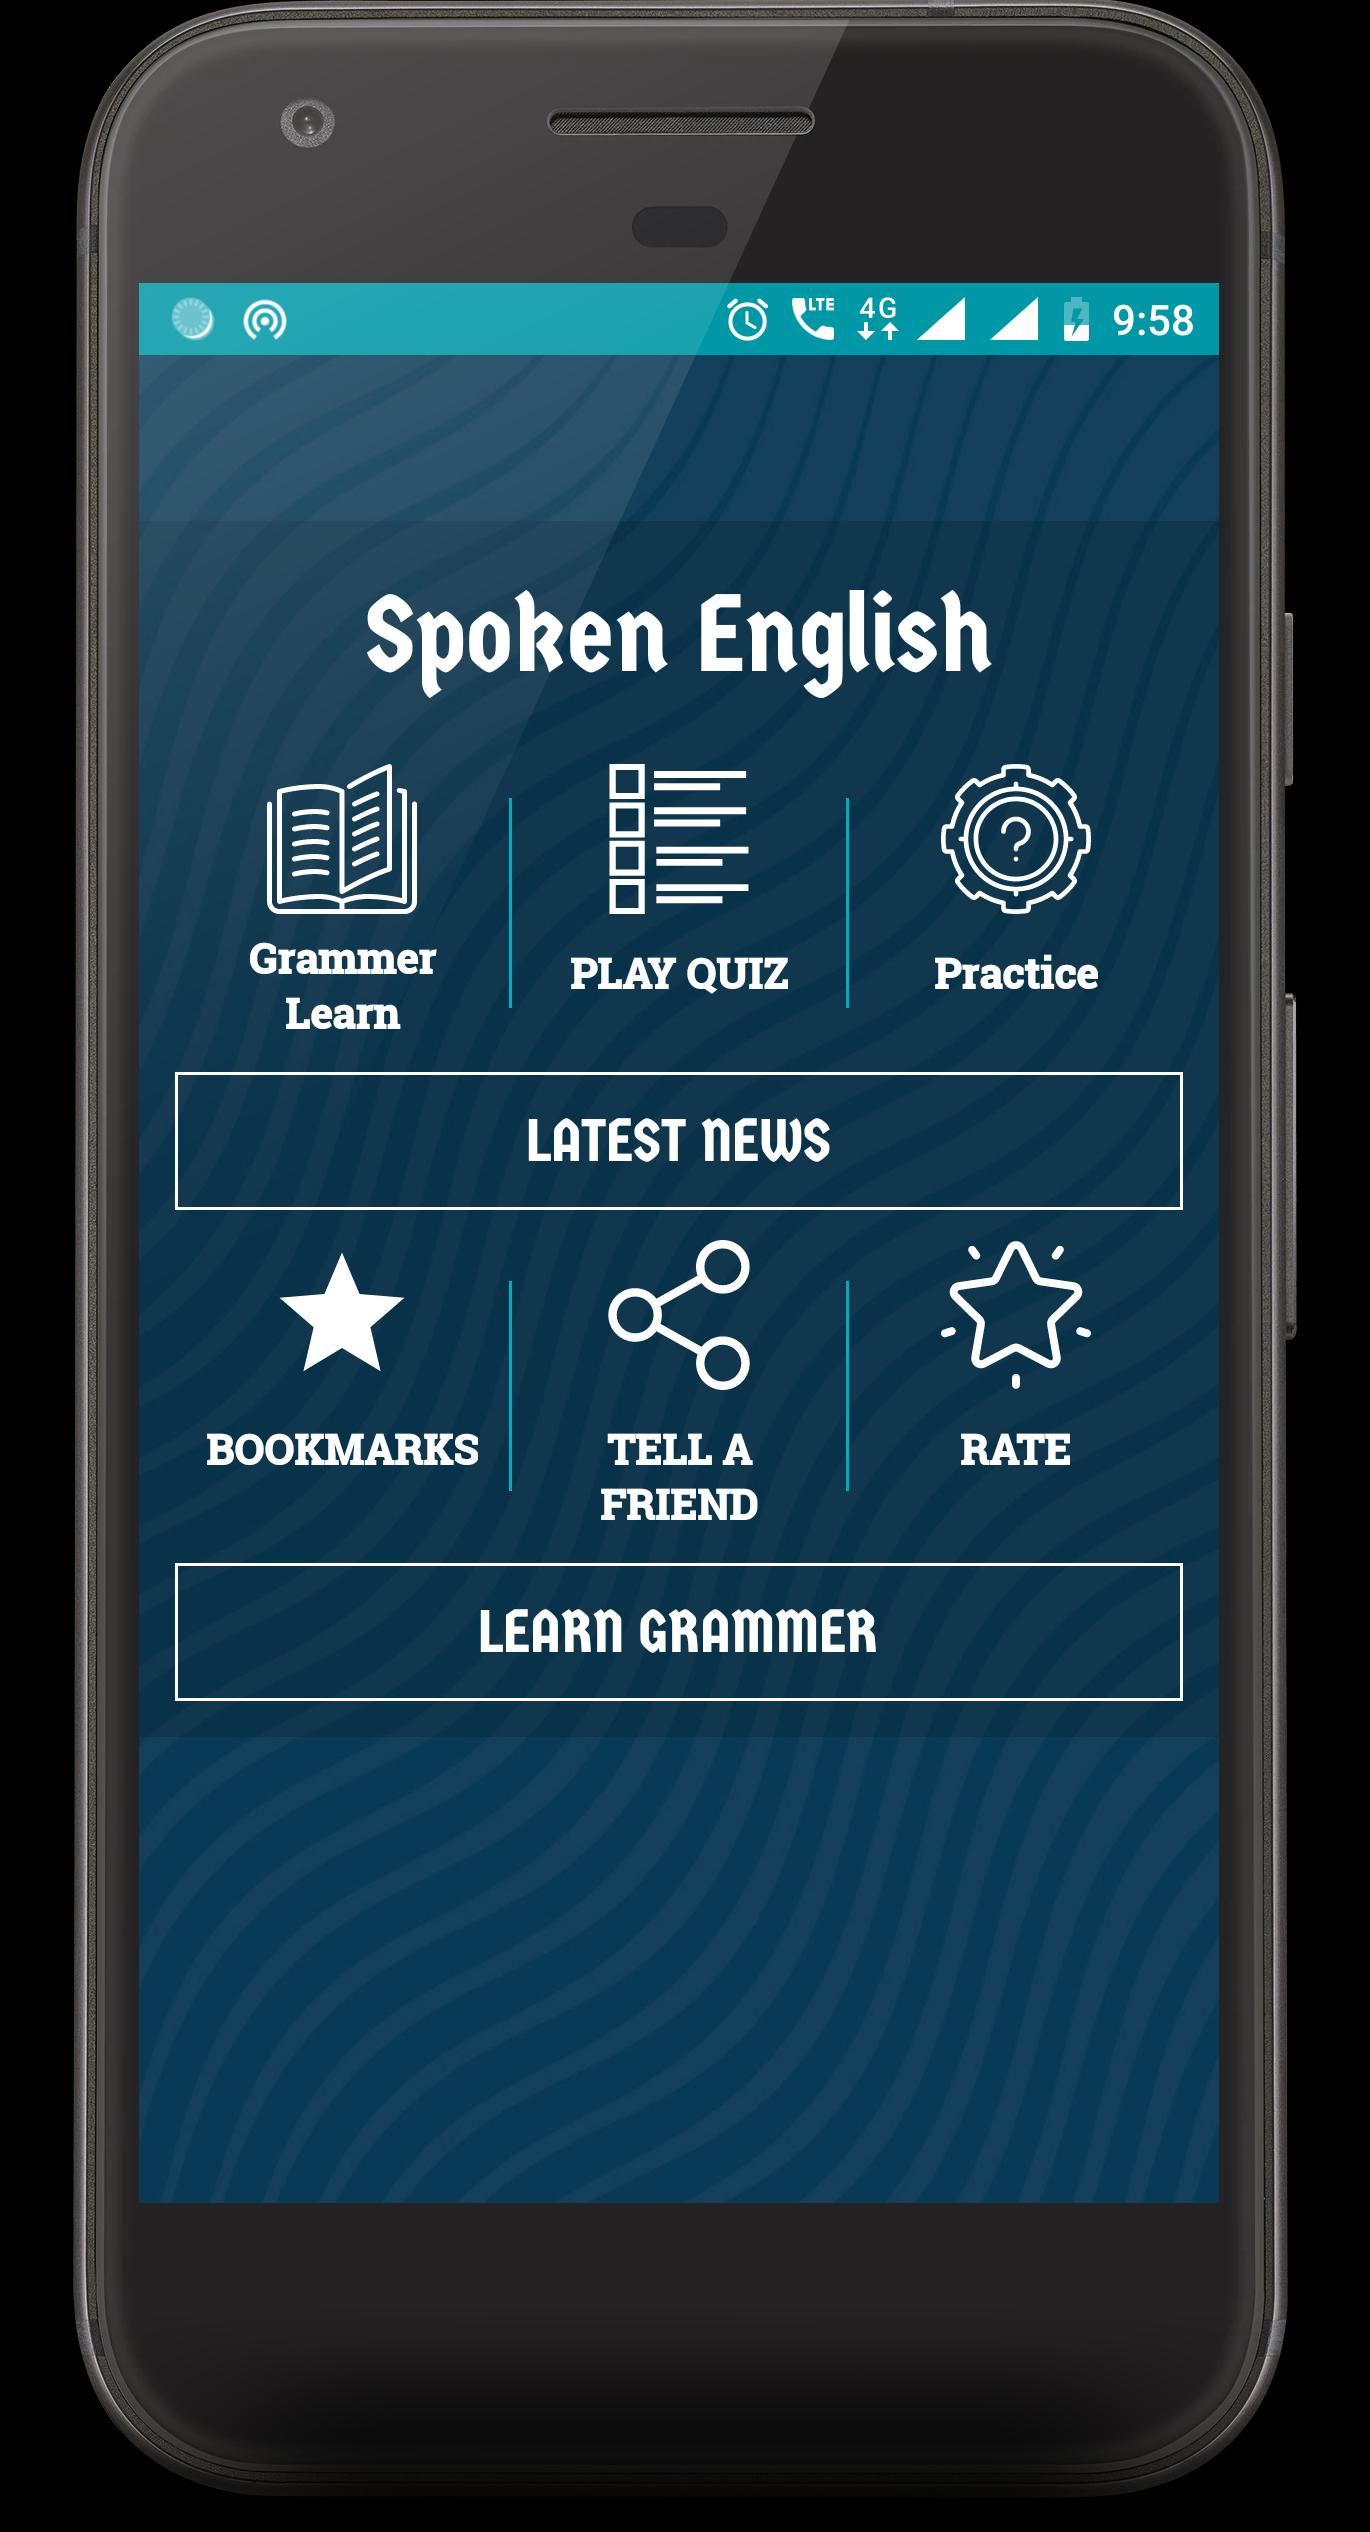 Download english speaking course in 7 days learn english 47. 3(47.